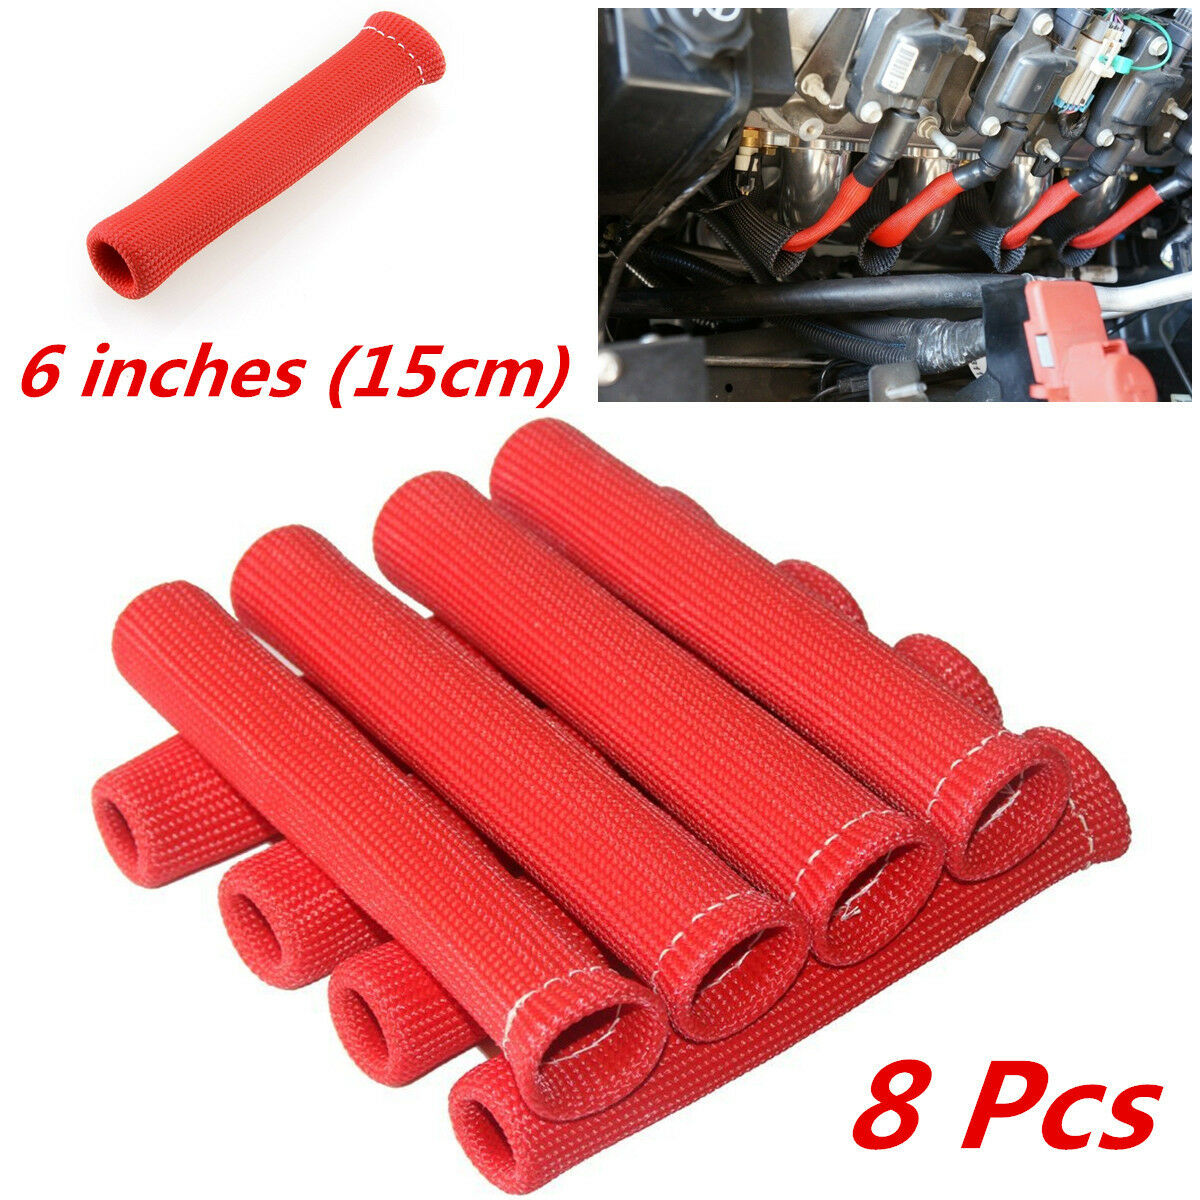 8pc Red 1200° Spark Plug Wire Protector Cover Heat Shield Sleeve ...